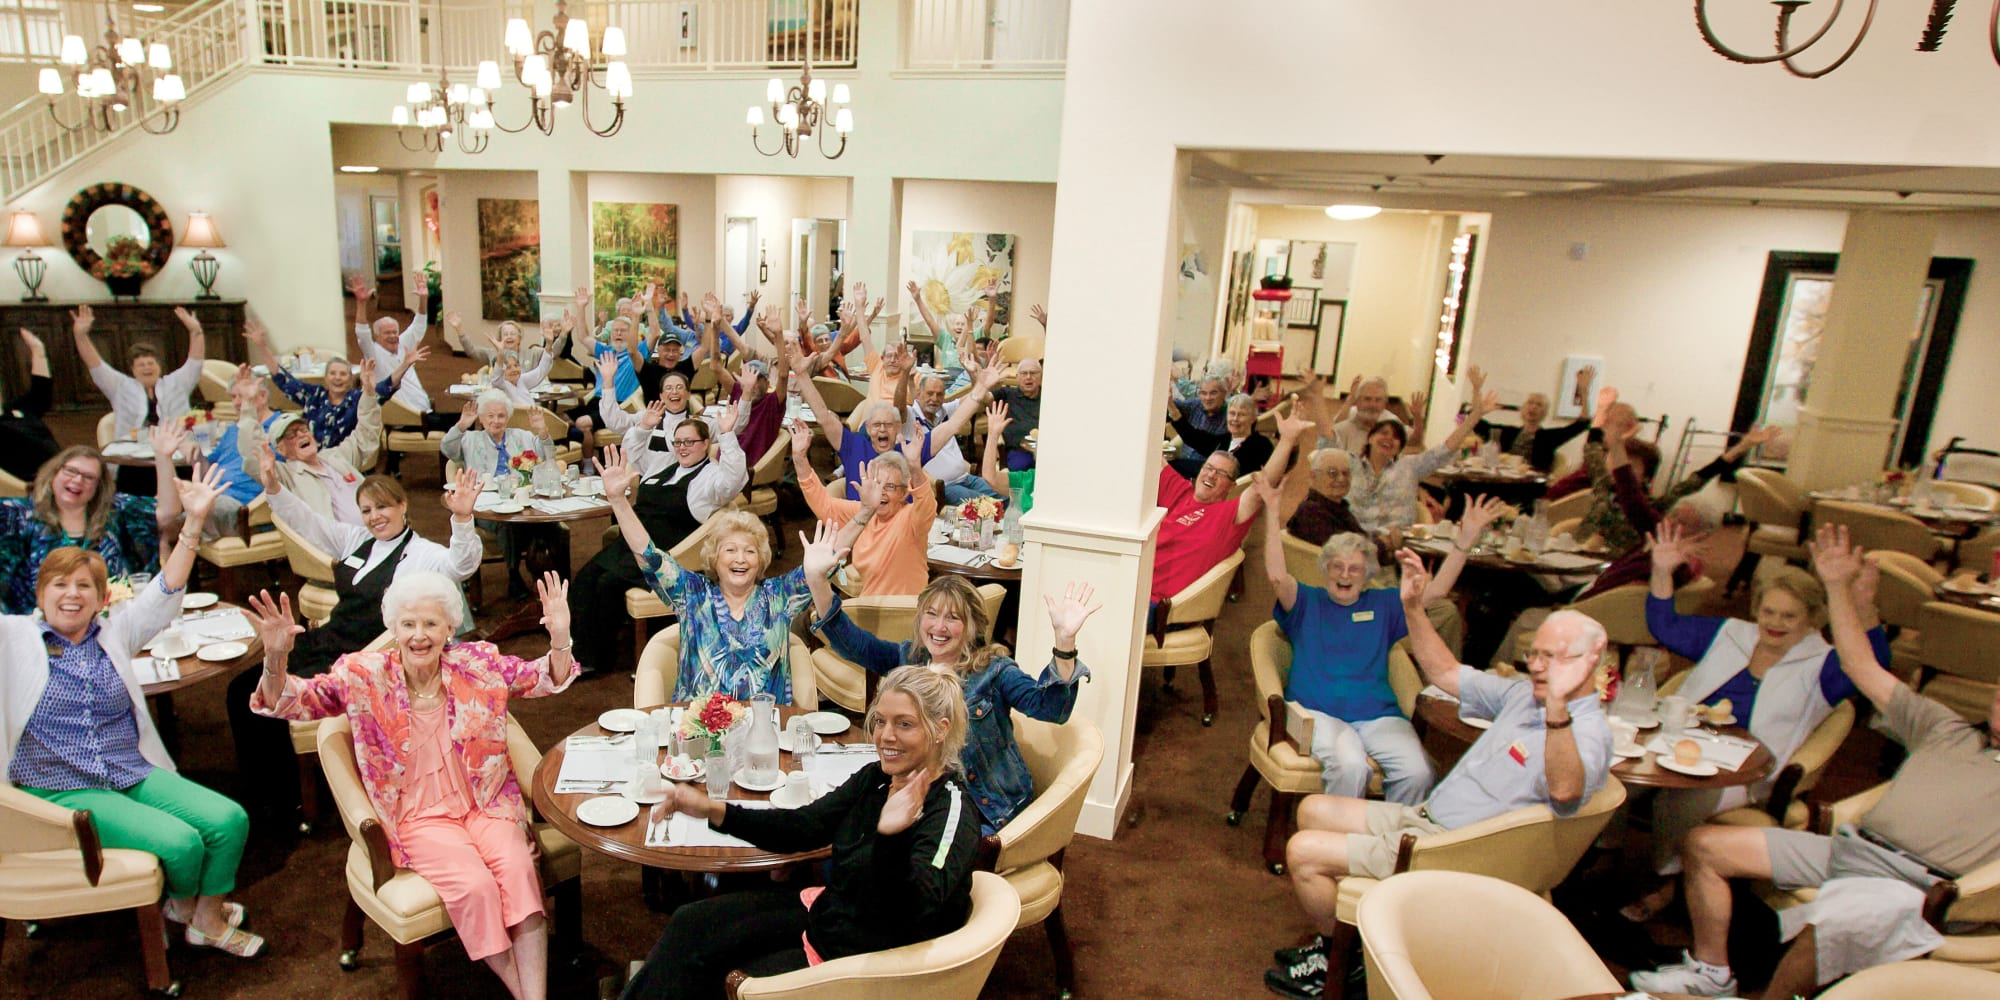 Residents and staff in the dining room at Pioneer Ridge Gracious Retirement Living in McKinney, Texas